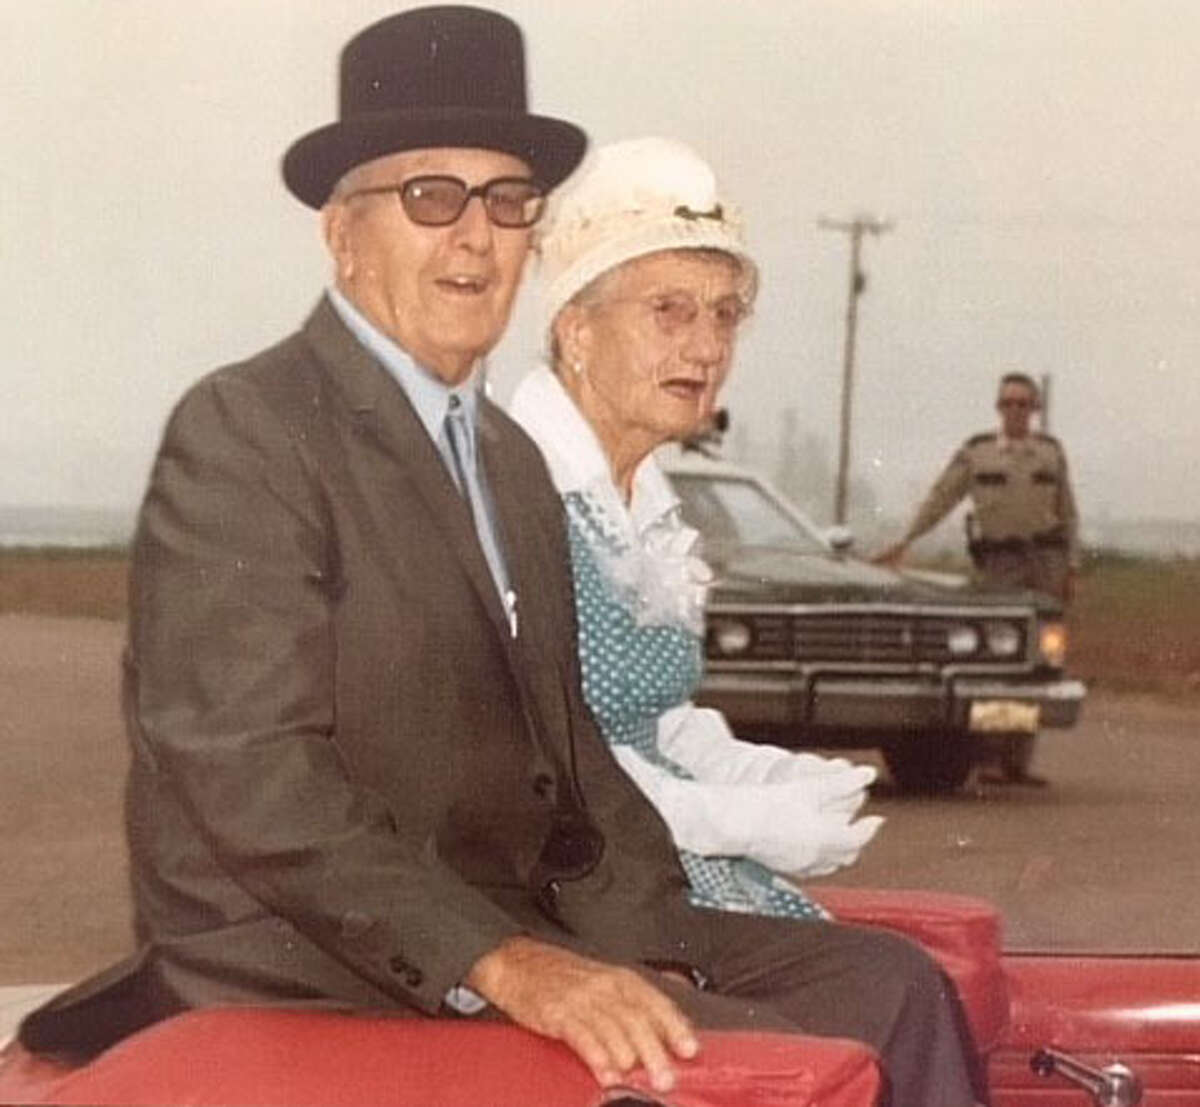 1979 Honored Pioneers Willis and Fredda Hawkins rode in the 1979 Hart Days Parade as its Honored Pioneers. Their son, Robert Hawkins, and wife Leta Mae Hawkins are this year's honorees as 2018 Hart Days Parade Marshals. Only one other child of a Hart Days Honored Pioneer has been a Parade Marshal. That was Joe Percy Hart.